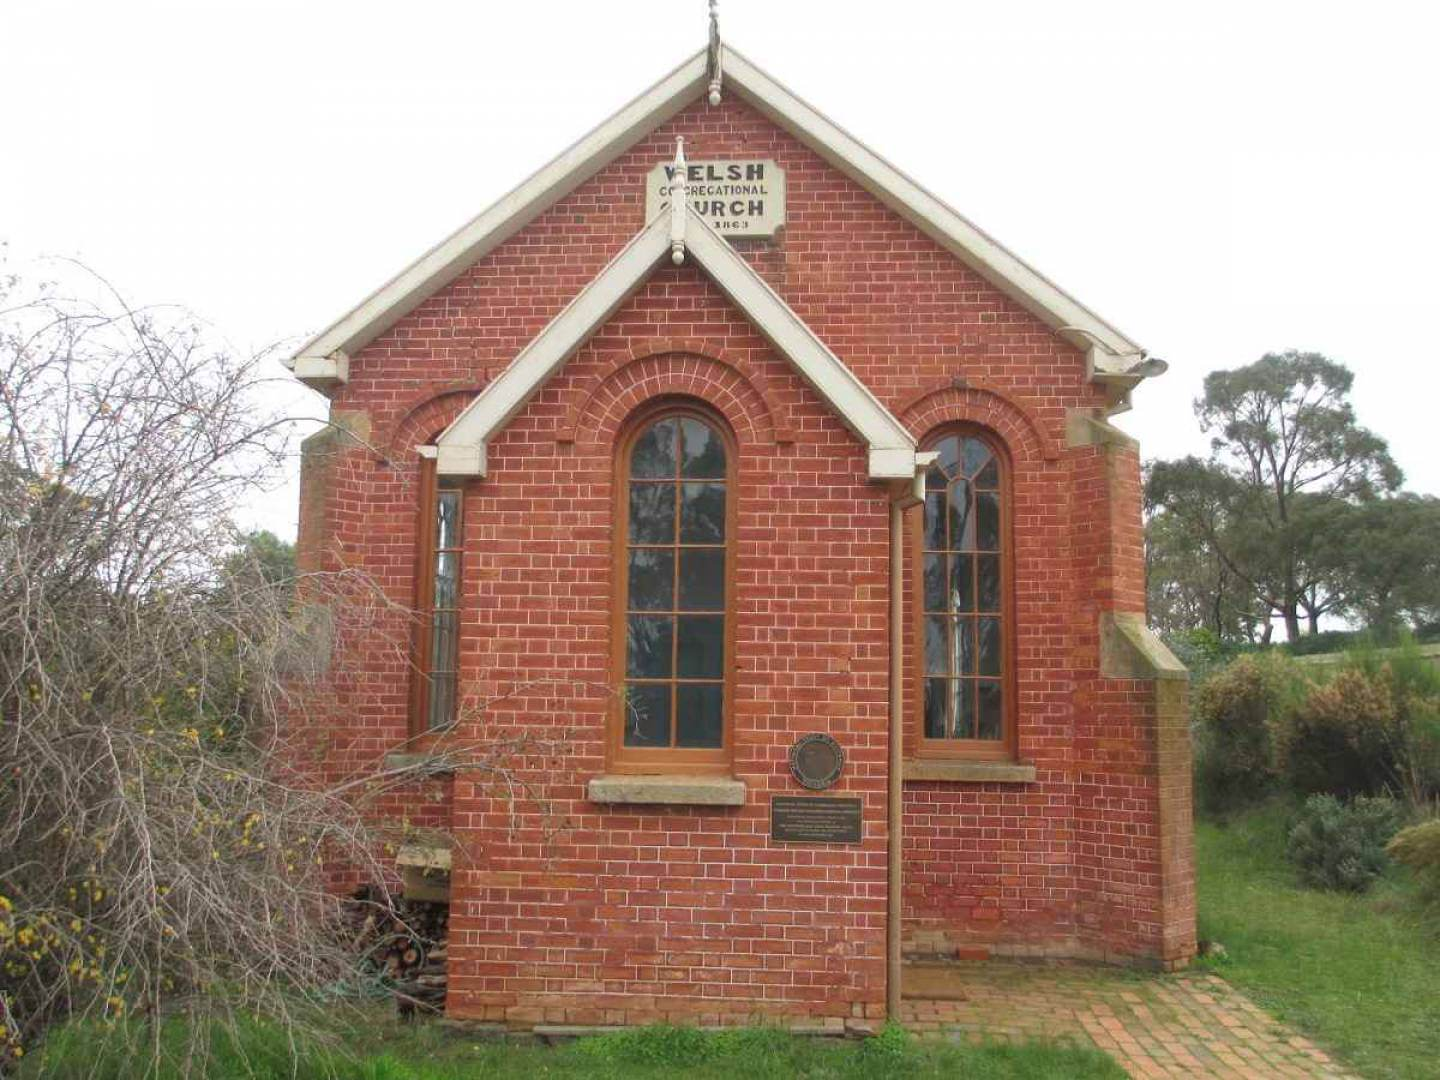 Welsh Congregational Church - Former